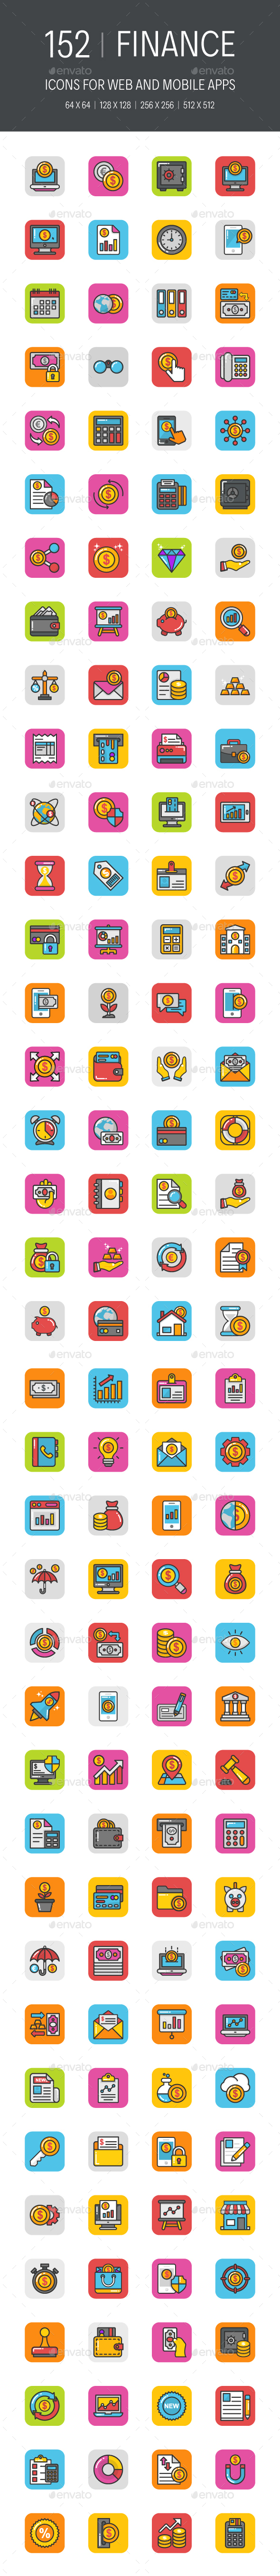 152 Finance Icons - Icons